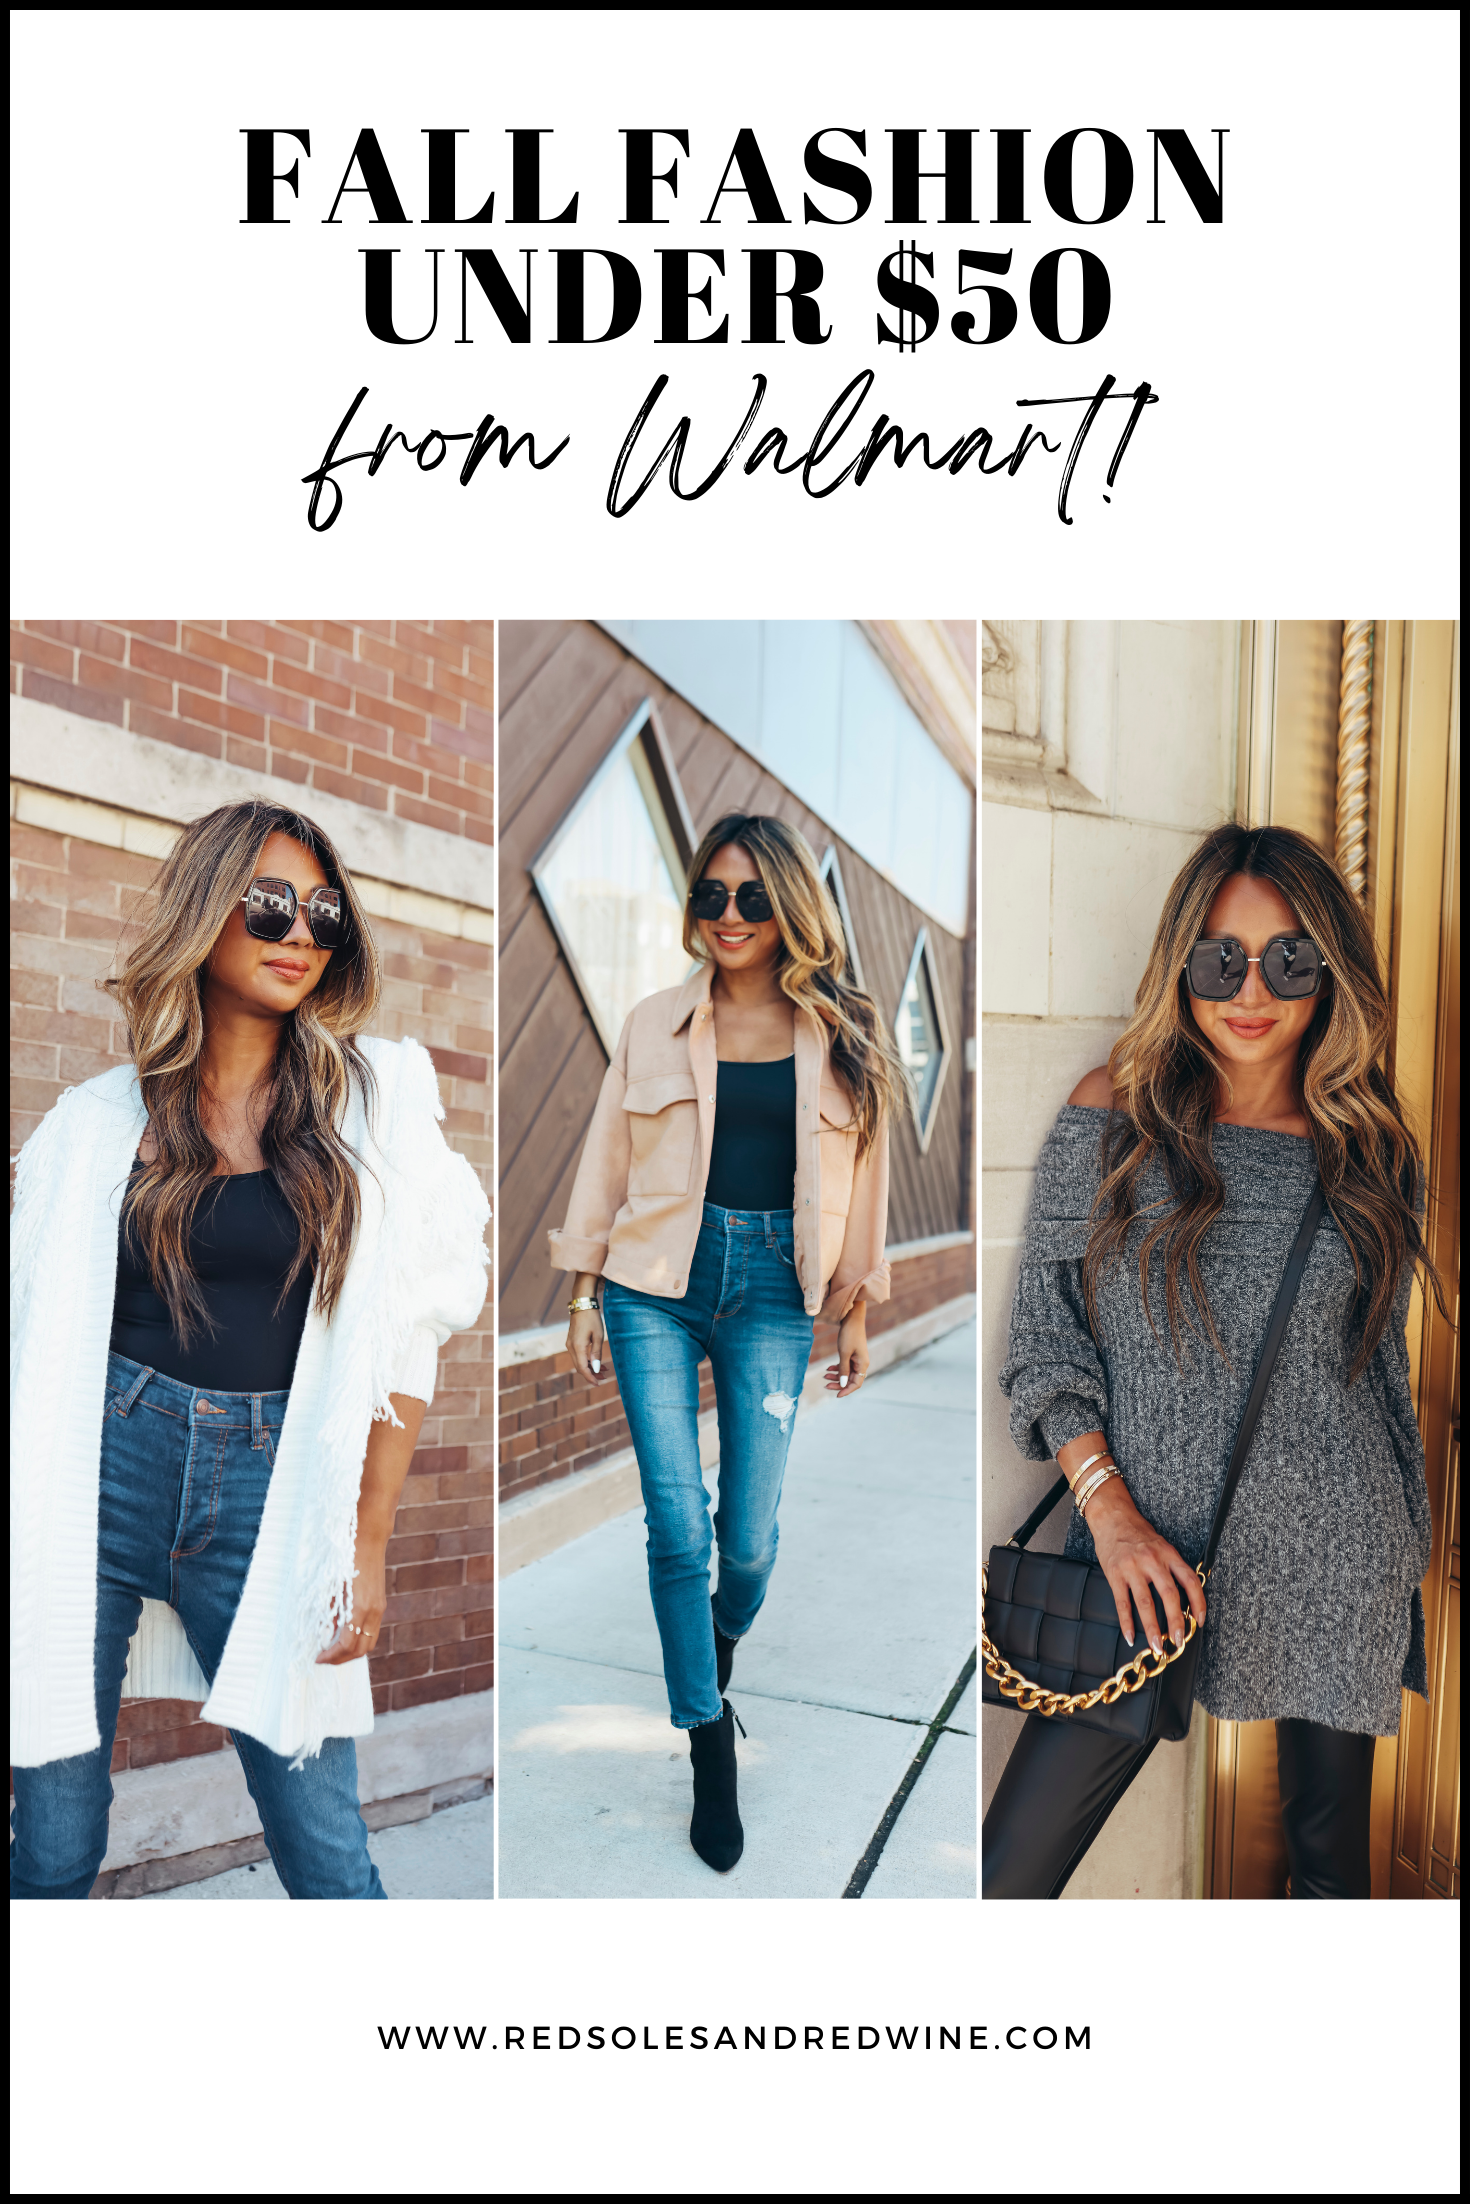 Fall Fashion under $50 from Walmart, Fall Fashion under $50 from Walmart, fall outfit inspiration, fall outift ideas, affordable fall fashion, affordable fall outfits, affordable fall style, fall outfit infpo, fall women's outfits, cold weather style, cute sweaters outfit inspo, cute sweaters, off shoulder sweaters, shackets, affordable shackets, affordable booties